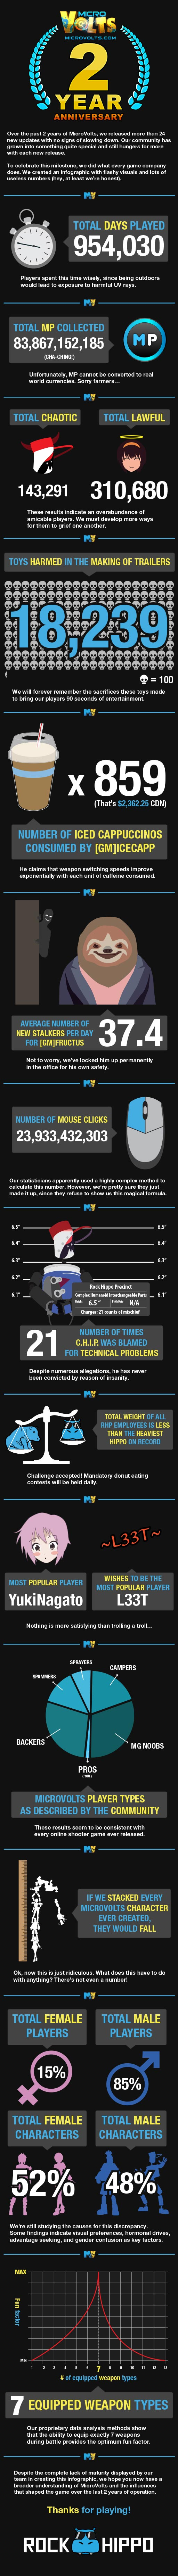 microvolts infografica